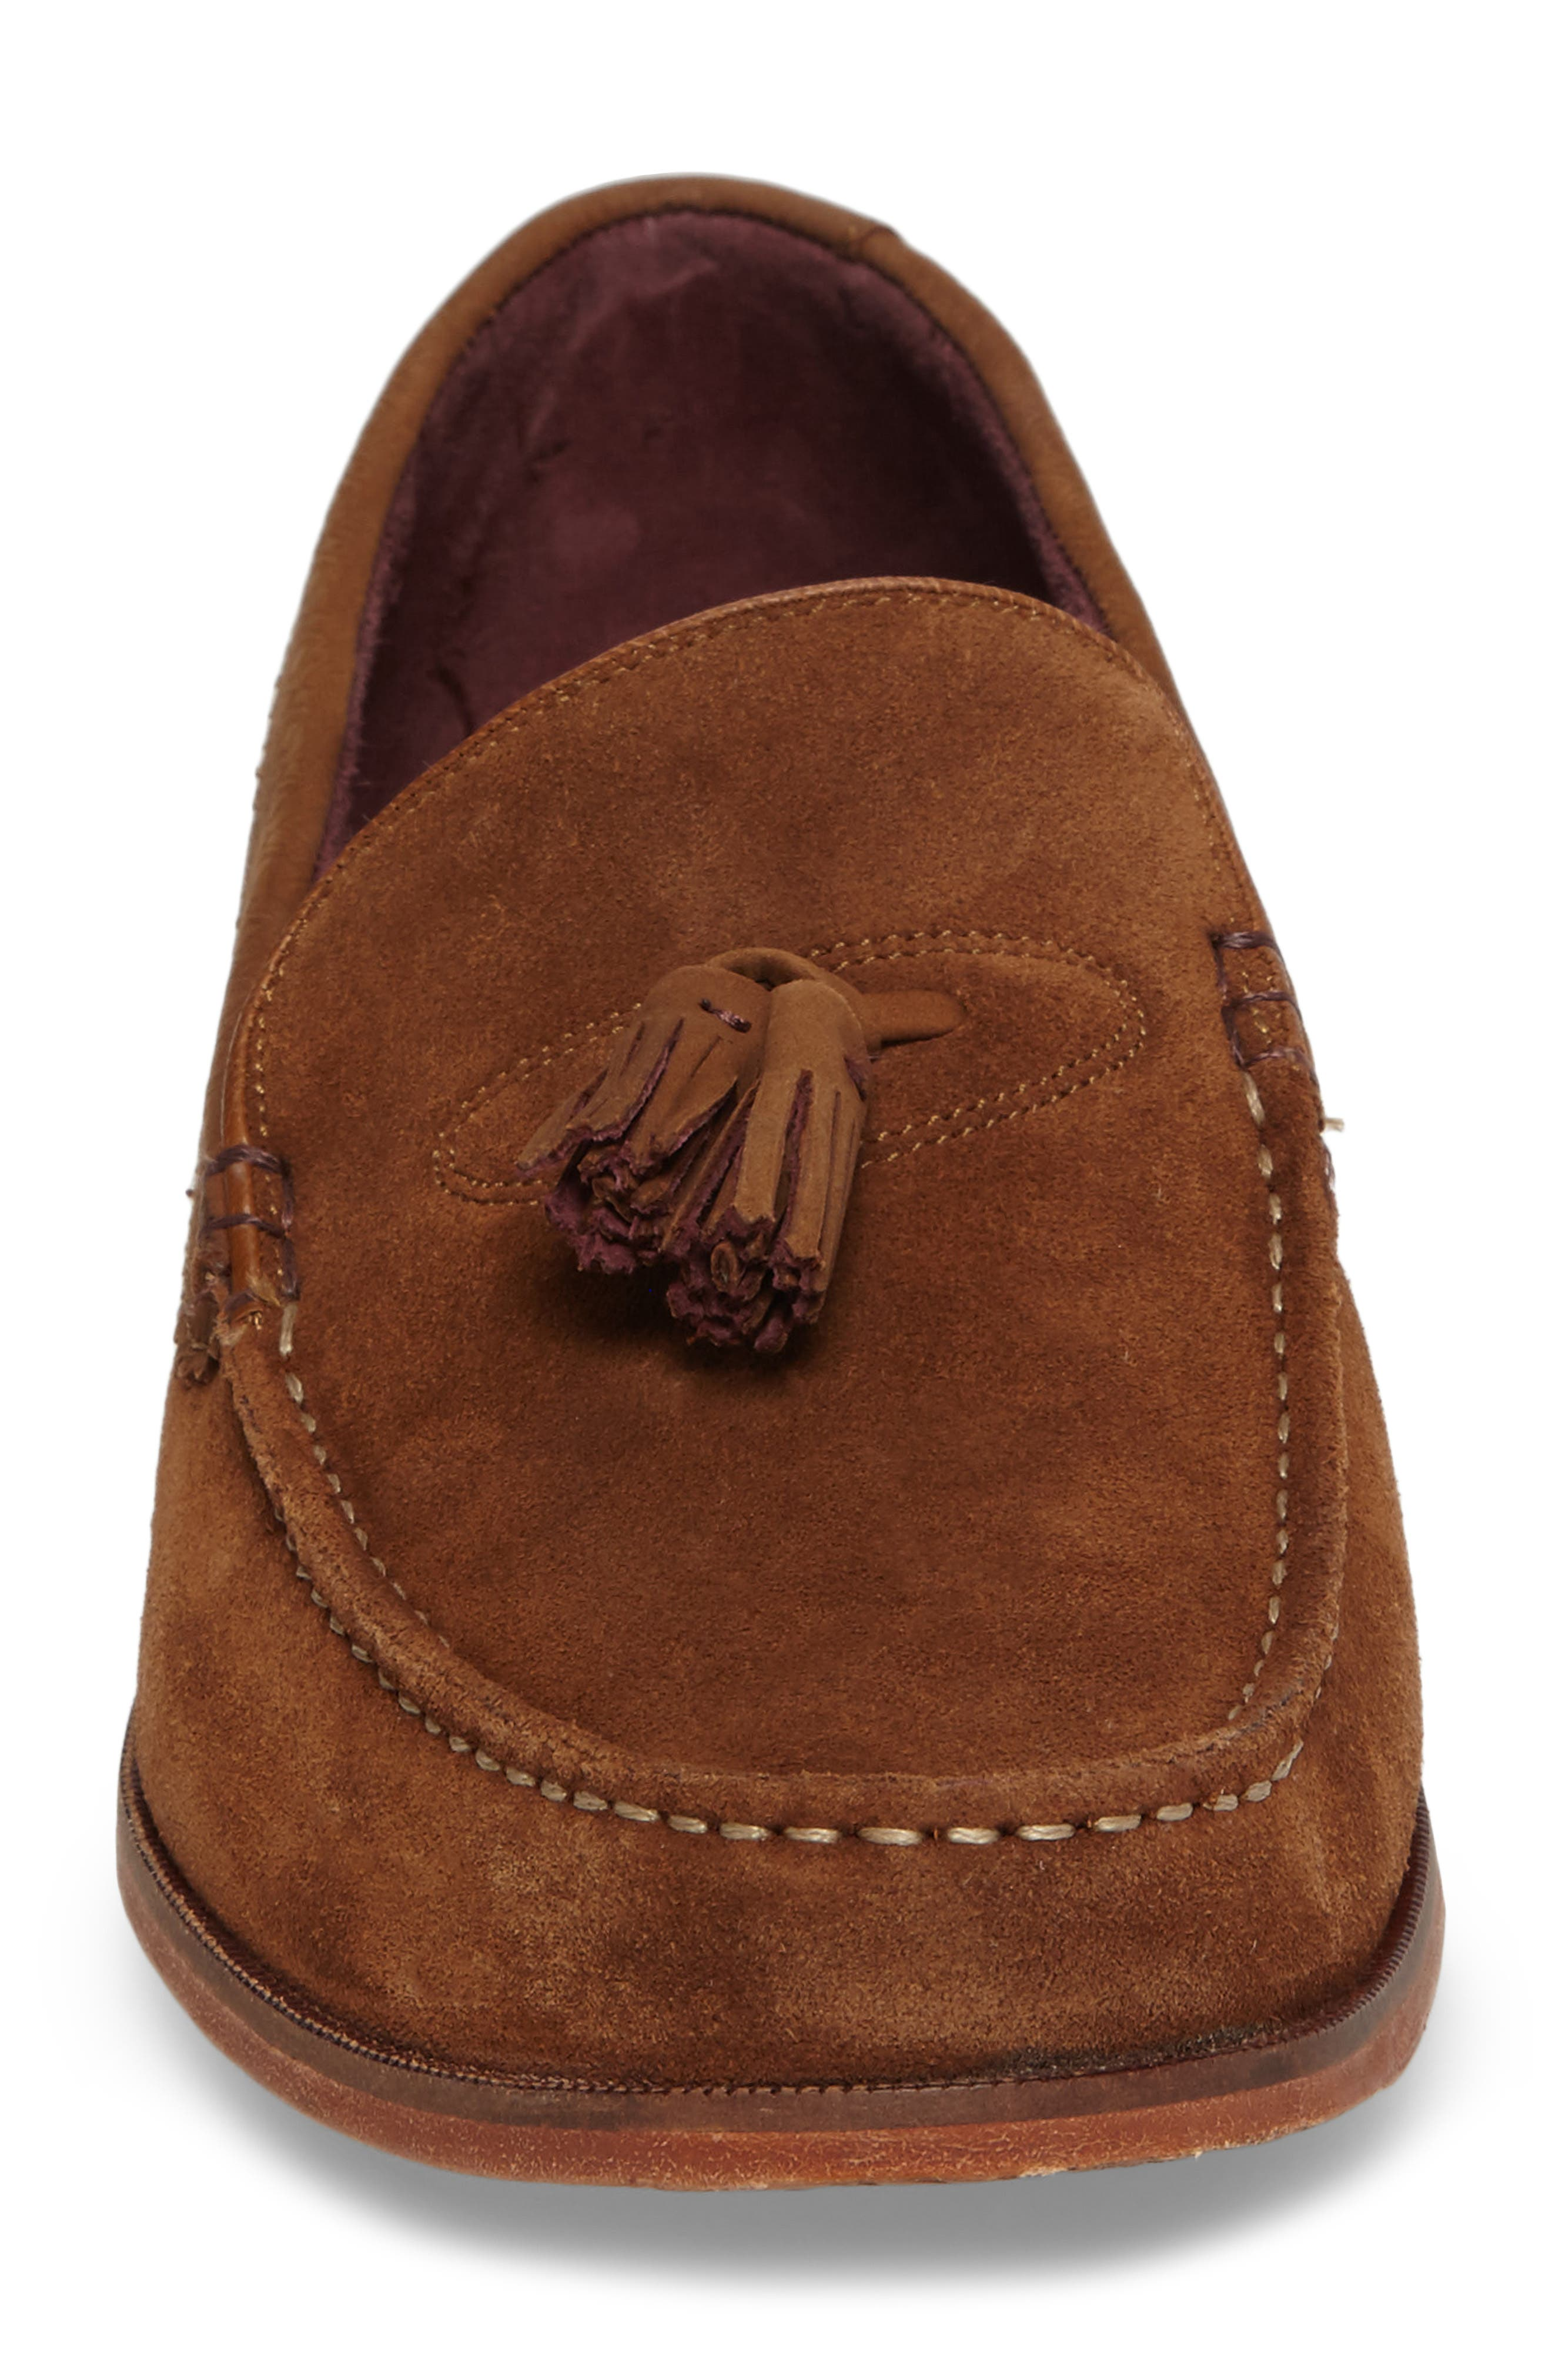 Dougge Tassel Loafer,                             Alternate thumbnail 20, color,